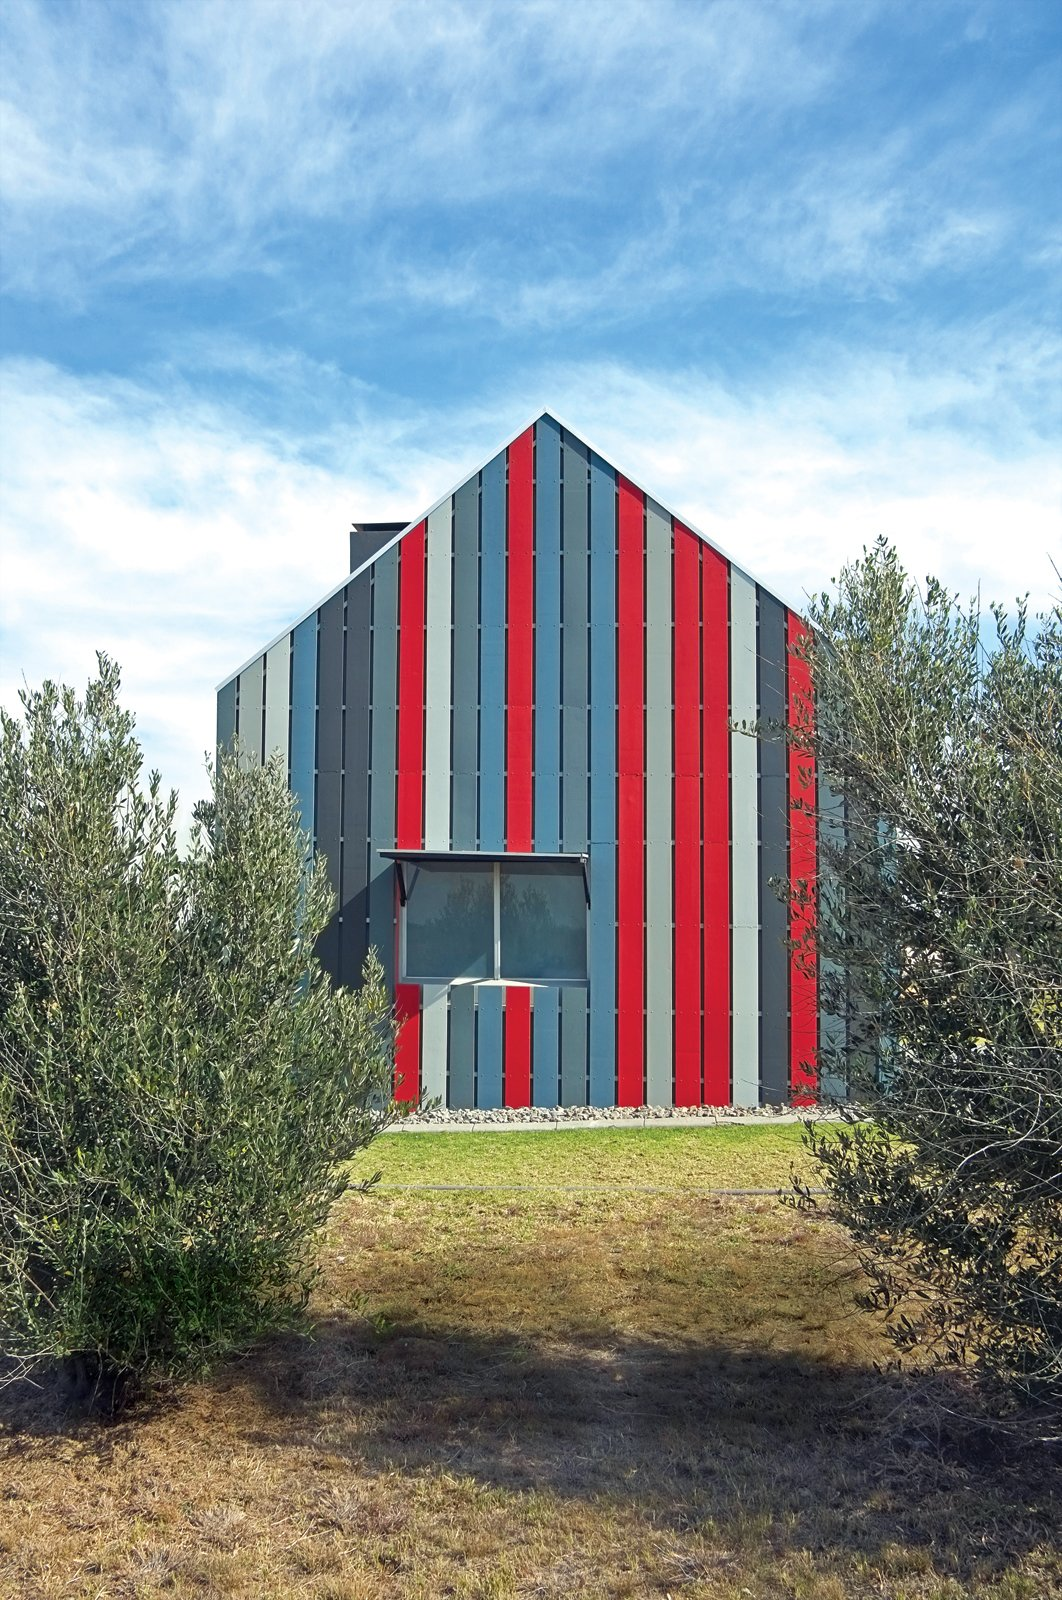 #outdoor #home #renovation #color #red #gray #clash   36+ Interior Color Pop Ideas For Modern Homes by Dwell